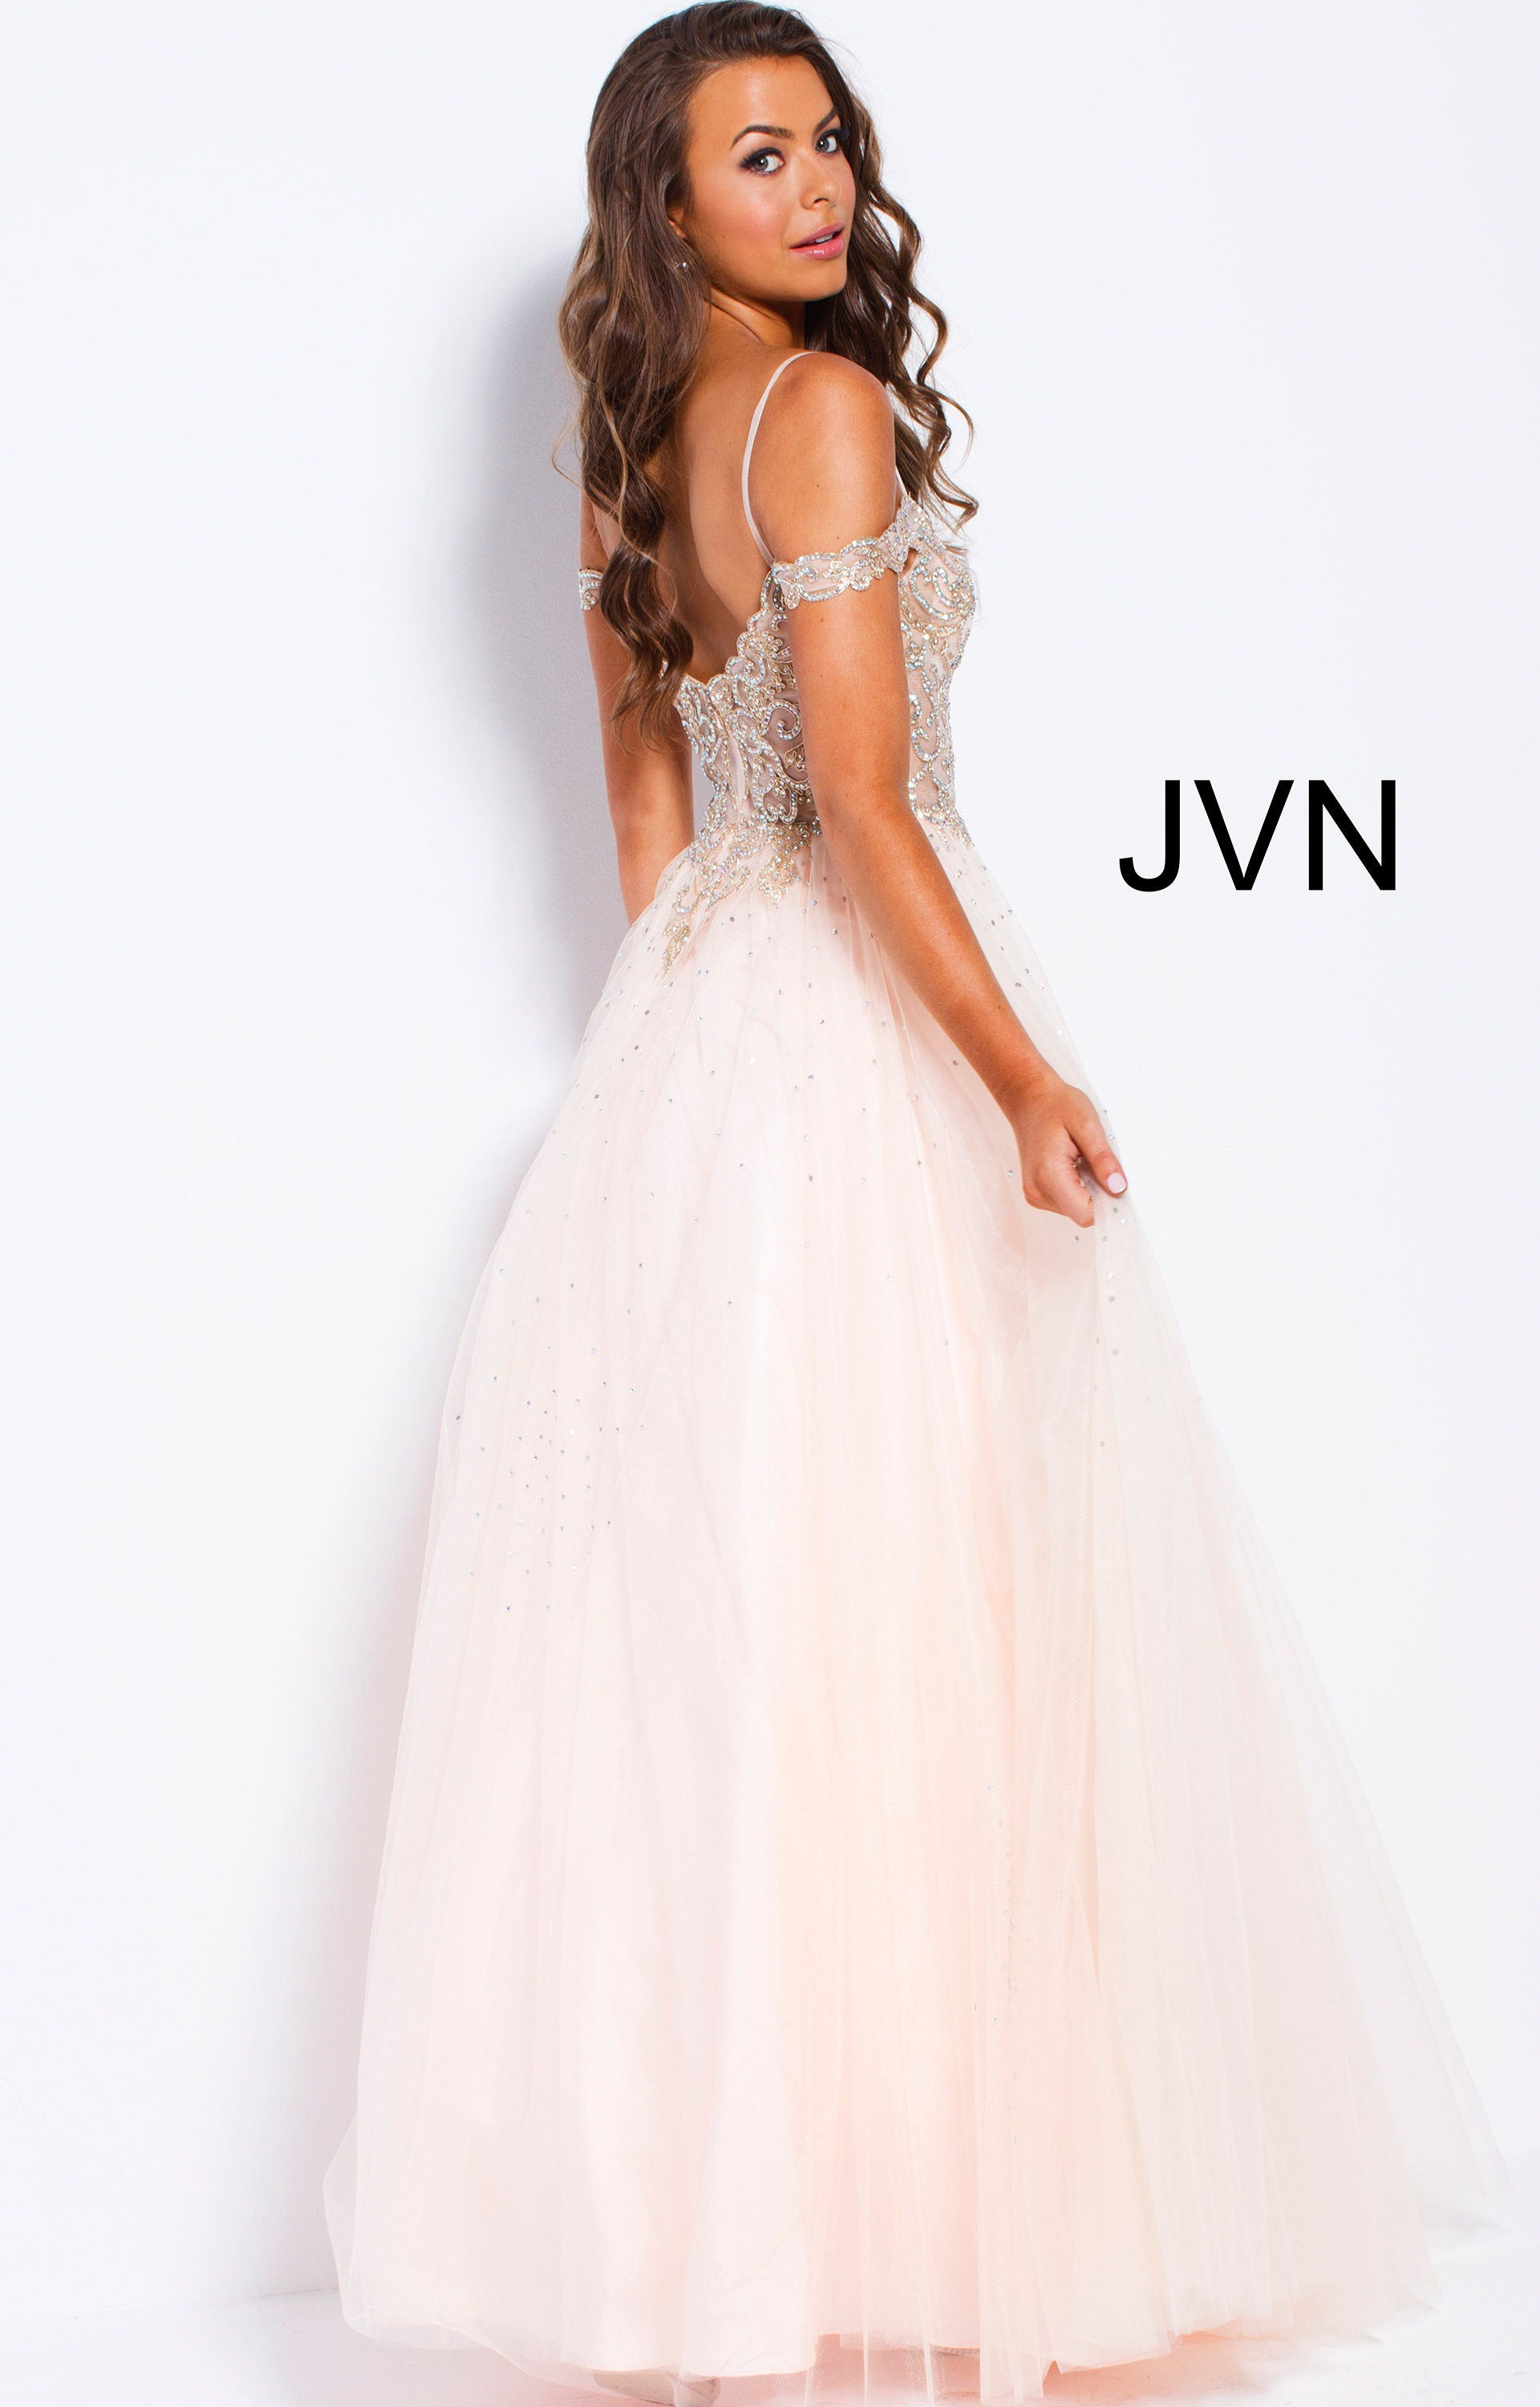 Jovani jvn58403 - Long Tulle Ball Gown Prom Dress